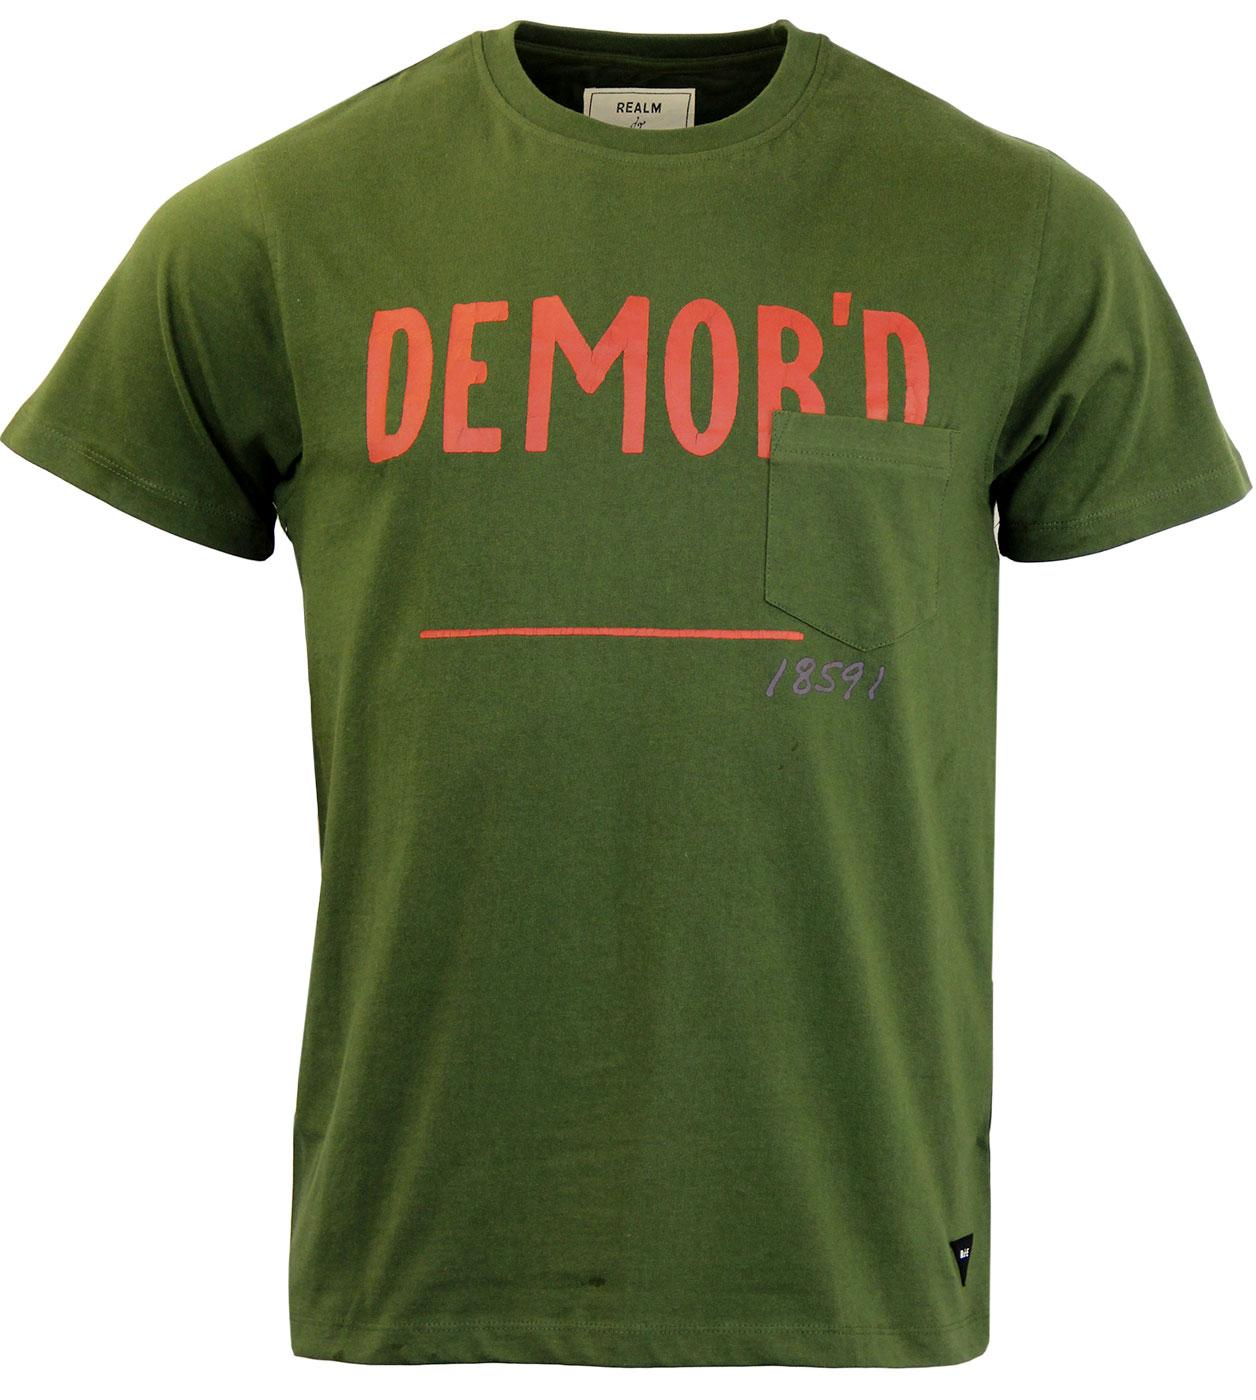 REALM & EMPIRE Retro Military Demob Crew T-shirt